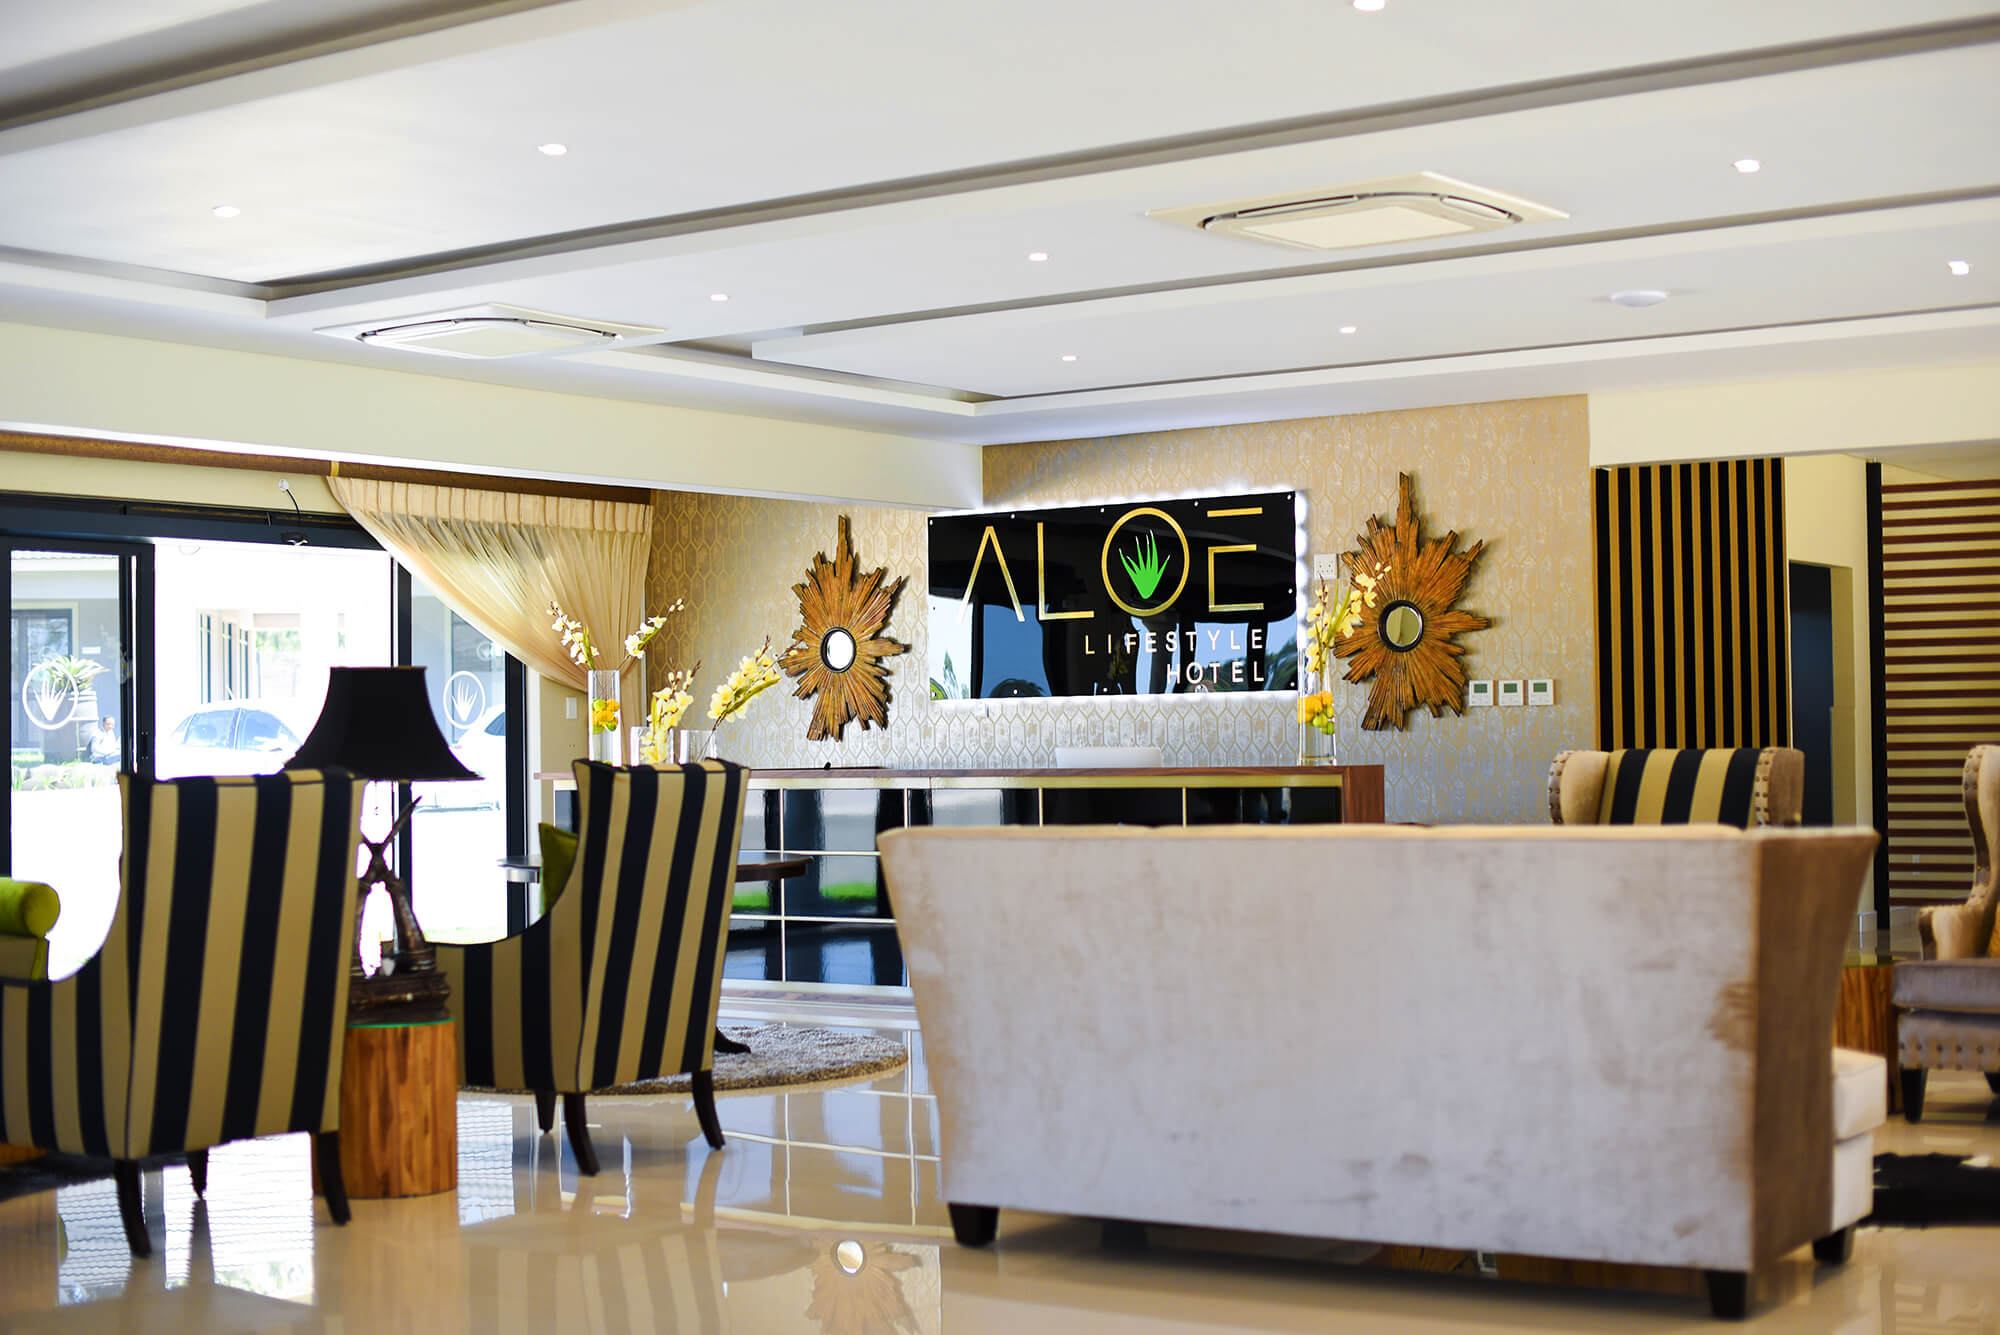 Aloe Lifestyle Hotel Reception